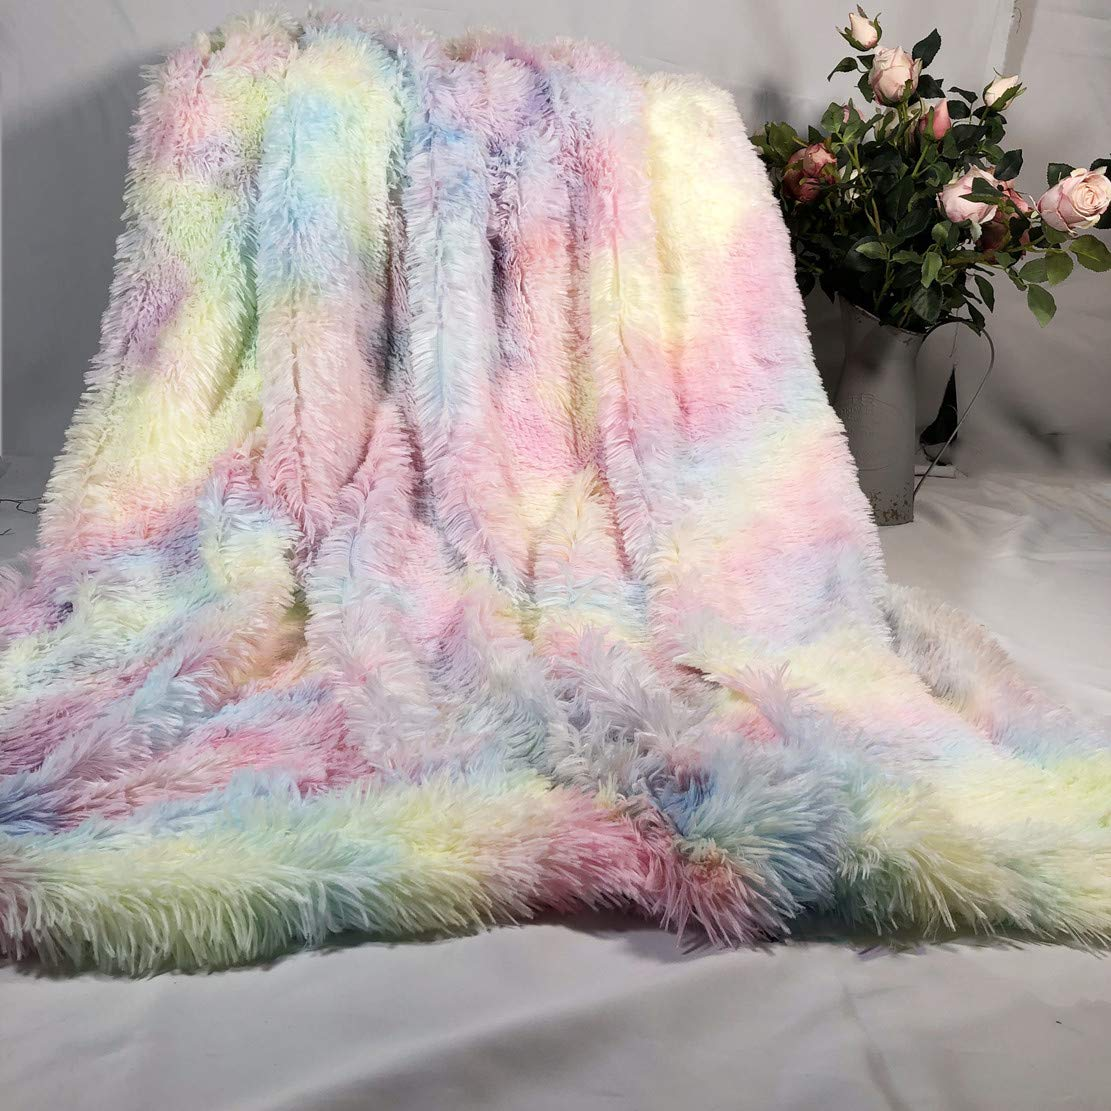 Rainbow Plush Super Soft Blanket Colorful Bedding Sofa Cover Furry Fuzzy Fur Warm Throw Cozy Couch Blanket For Winte